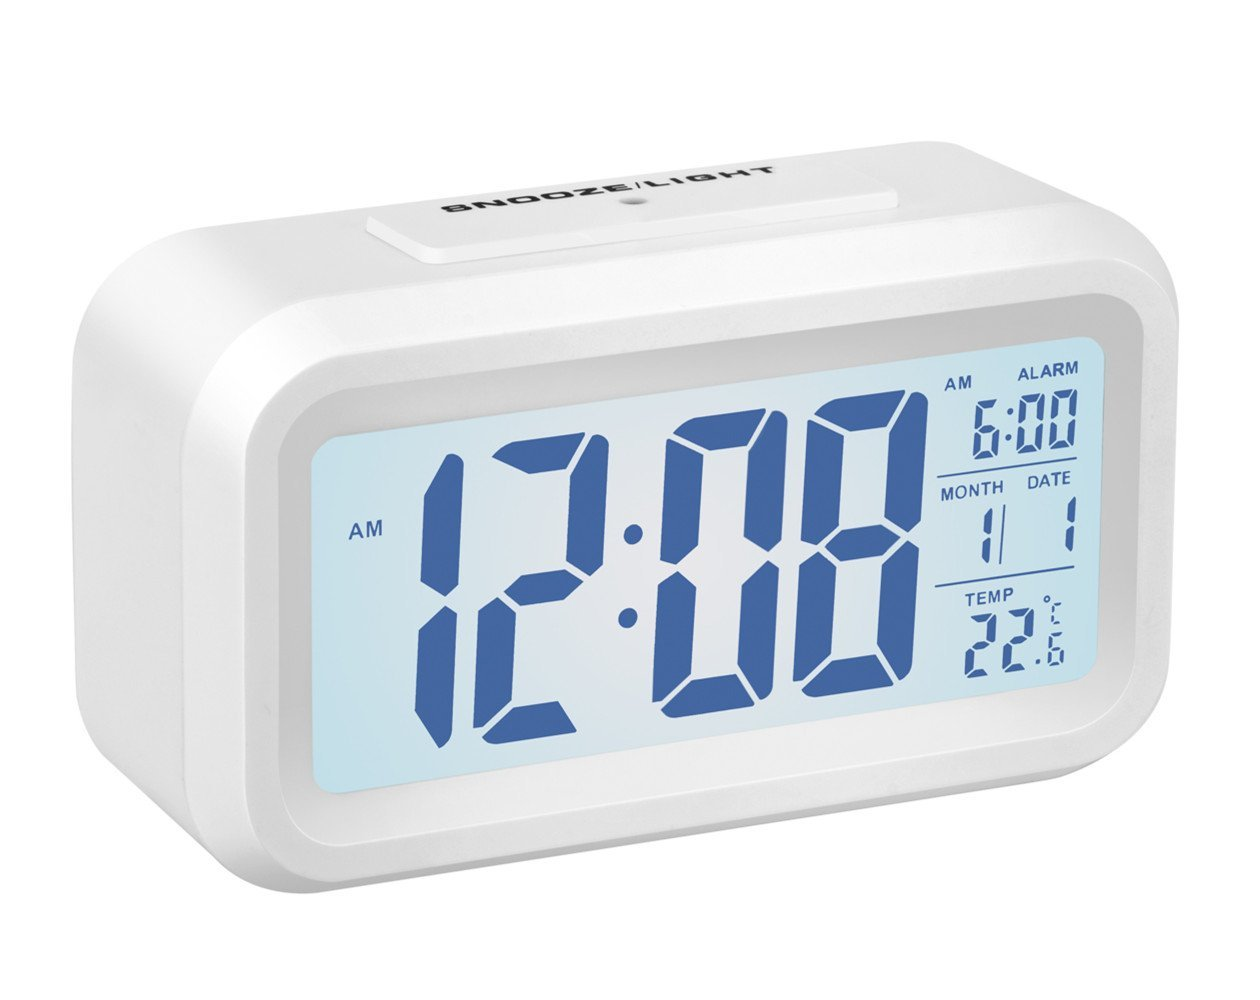 Alarm Clock,Gabone Battery Operated with Large Lcd Display Temperature Display Nightlight and Snooze Smart Backlight Digital Alarm Clock (White)